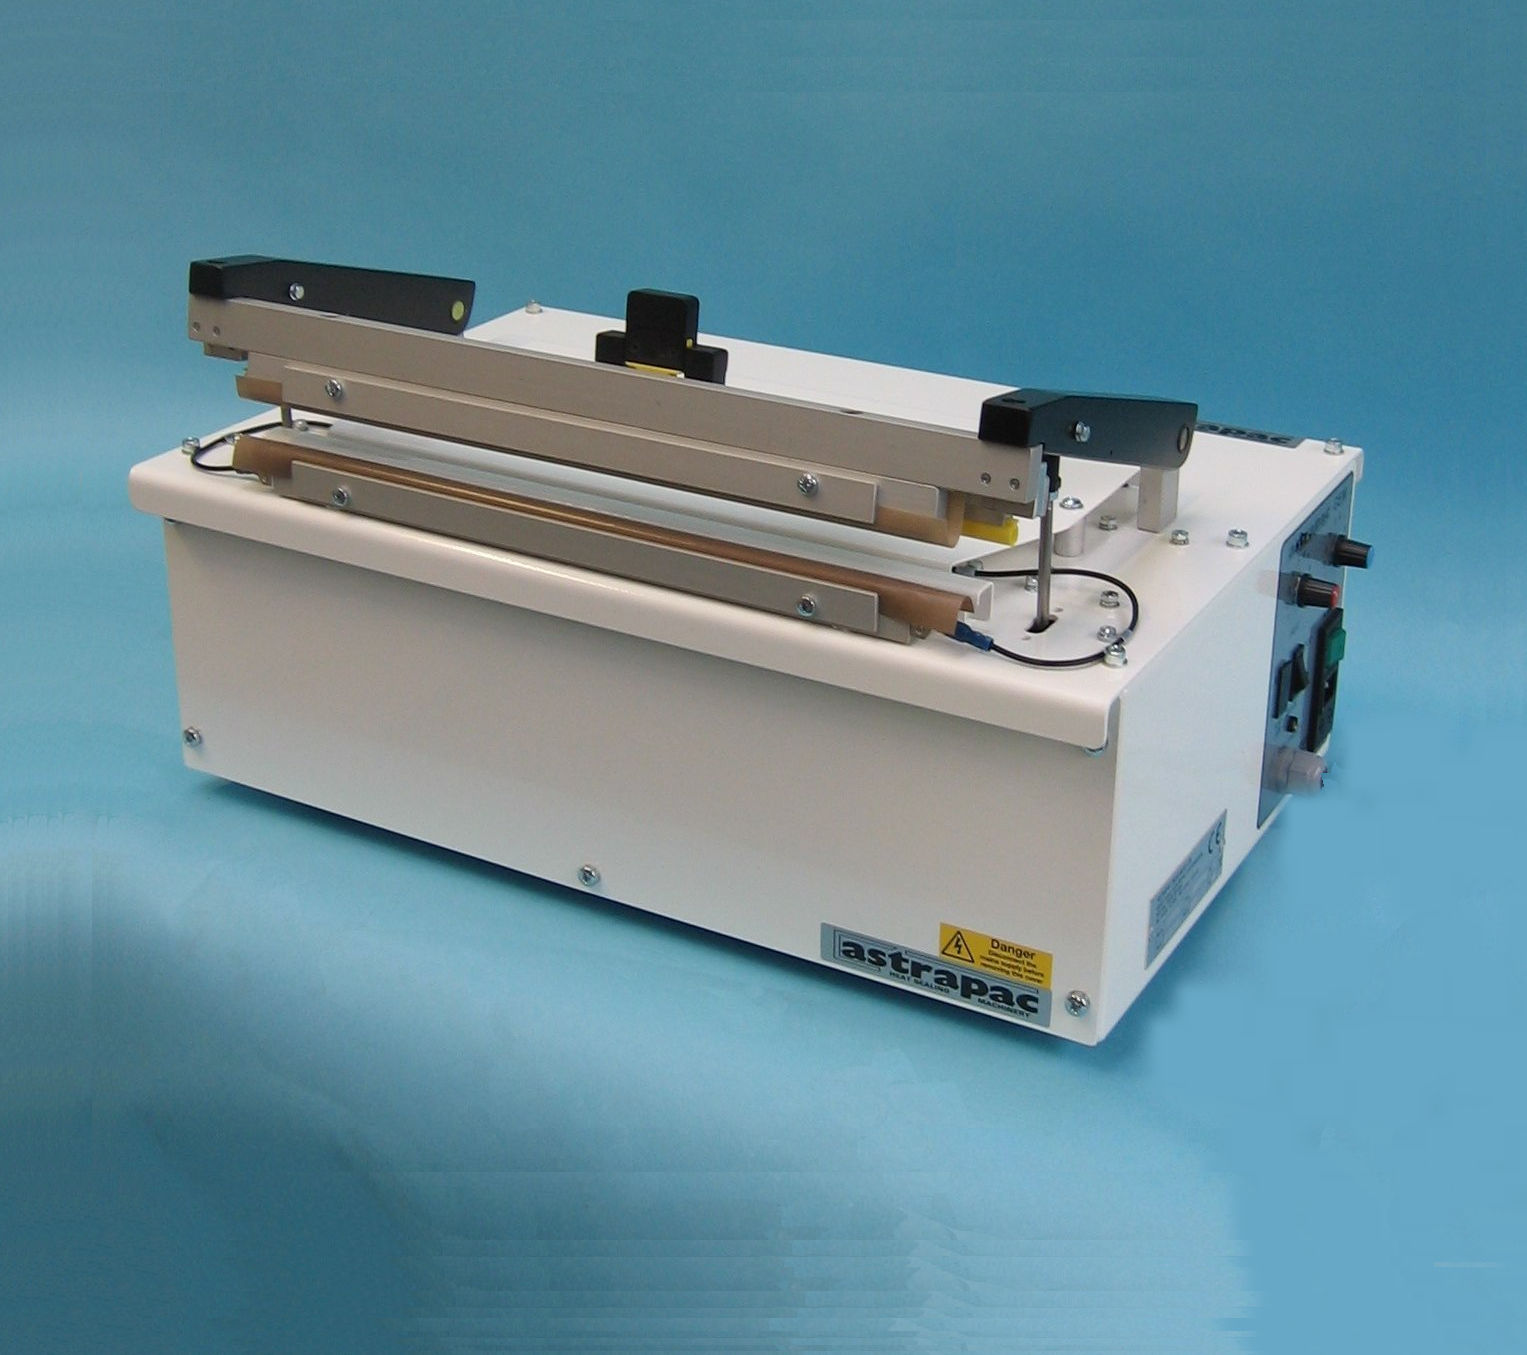 Industrial Heat Sealing Machines for Food Processing, more